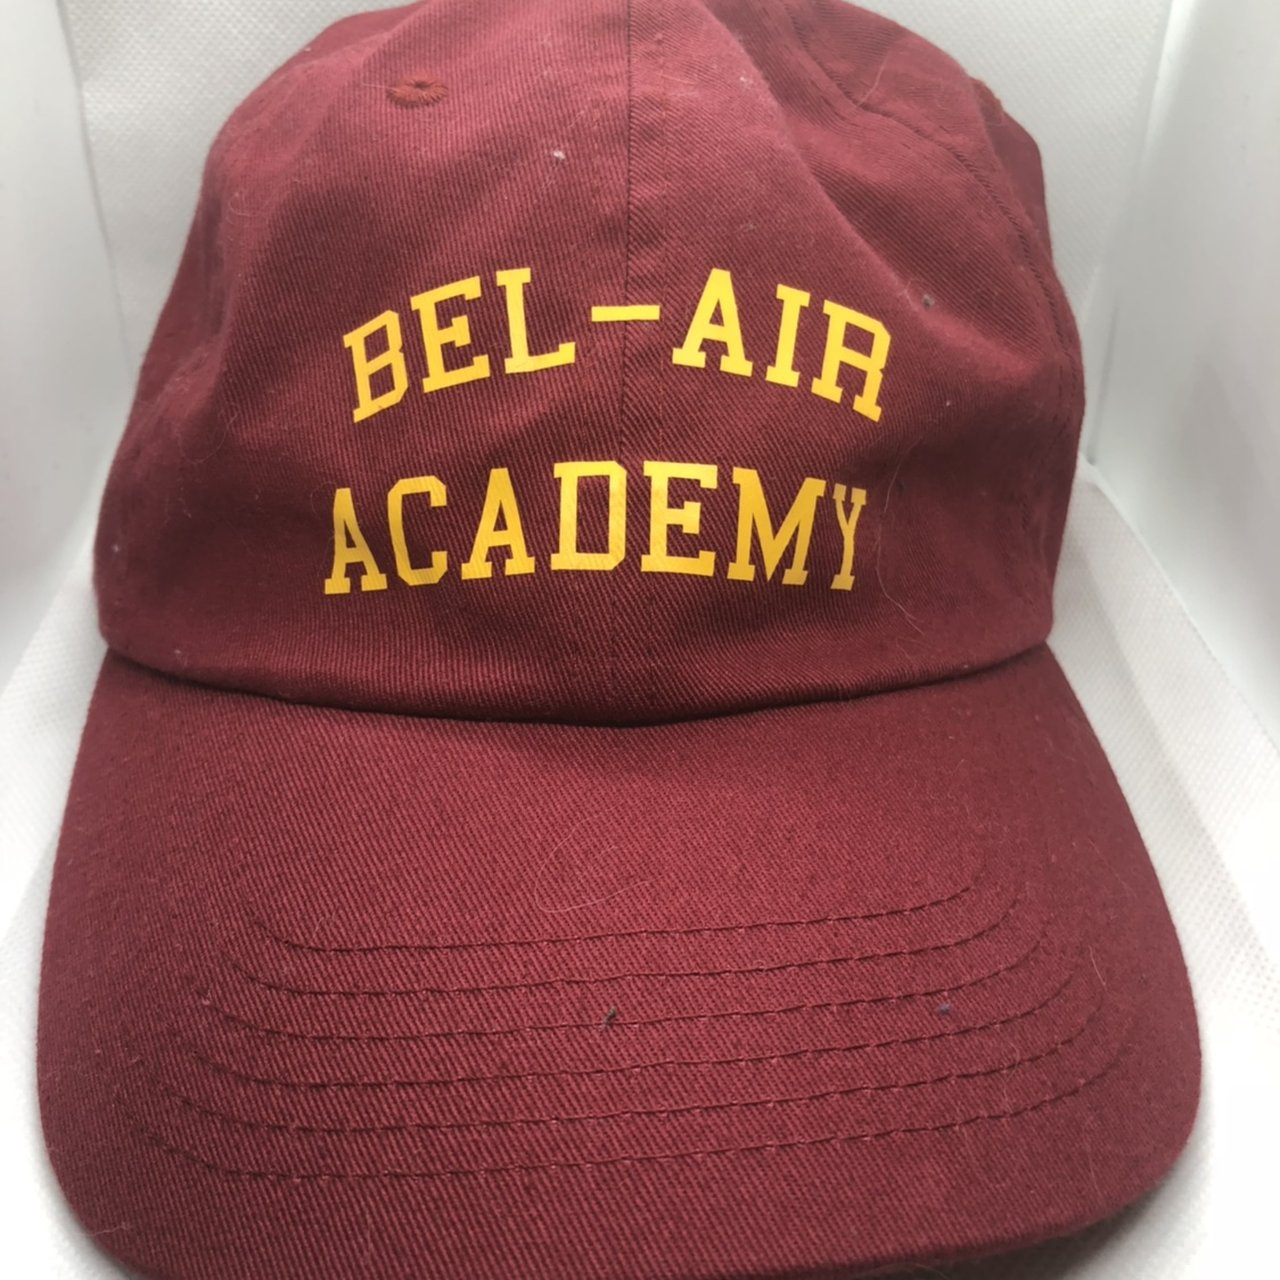 Bel Air Academy dad hat •worn once• The fresh prince of - Depop 624b7d078c3